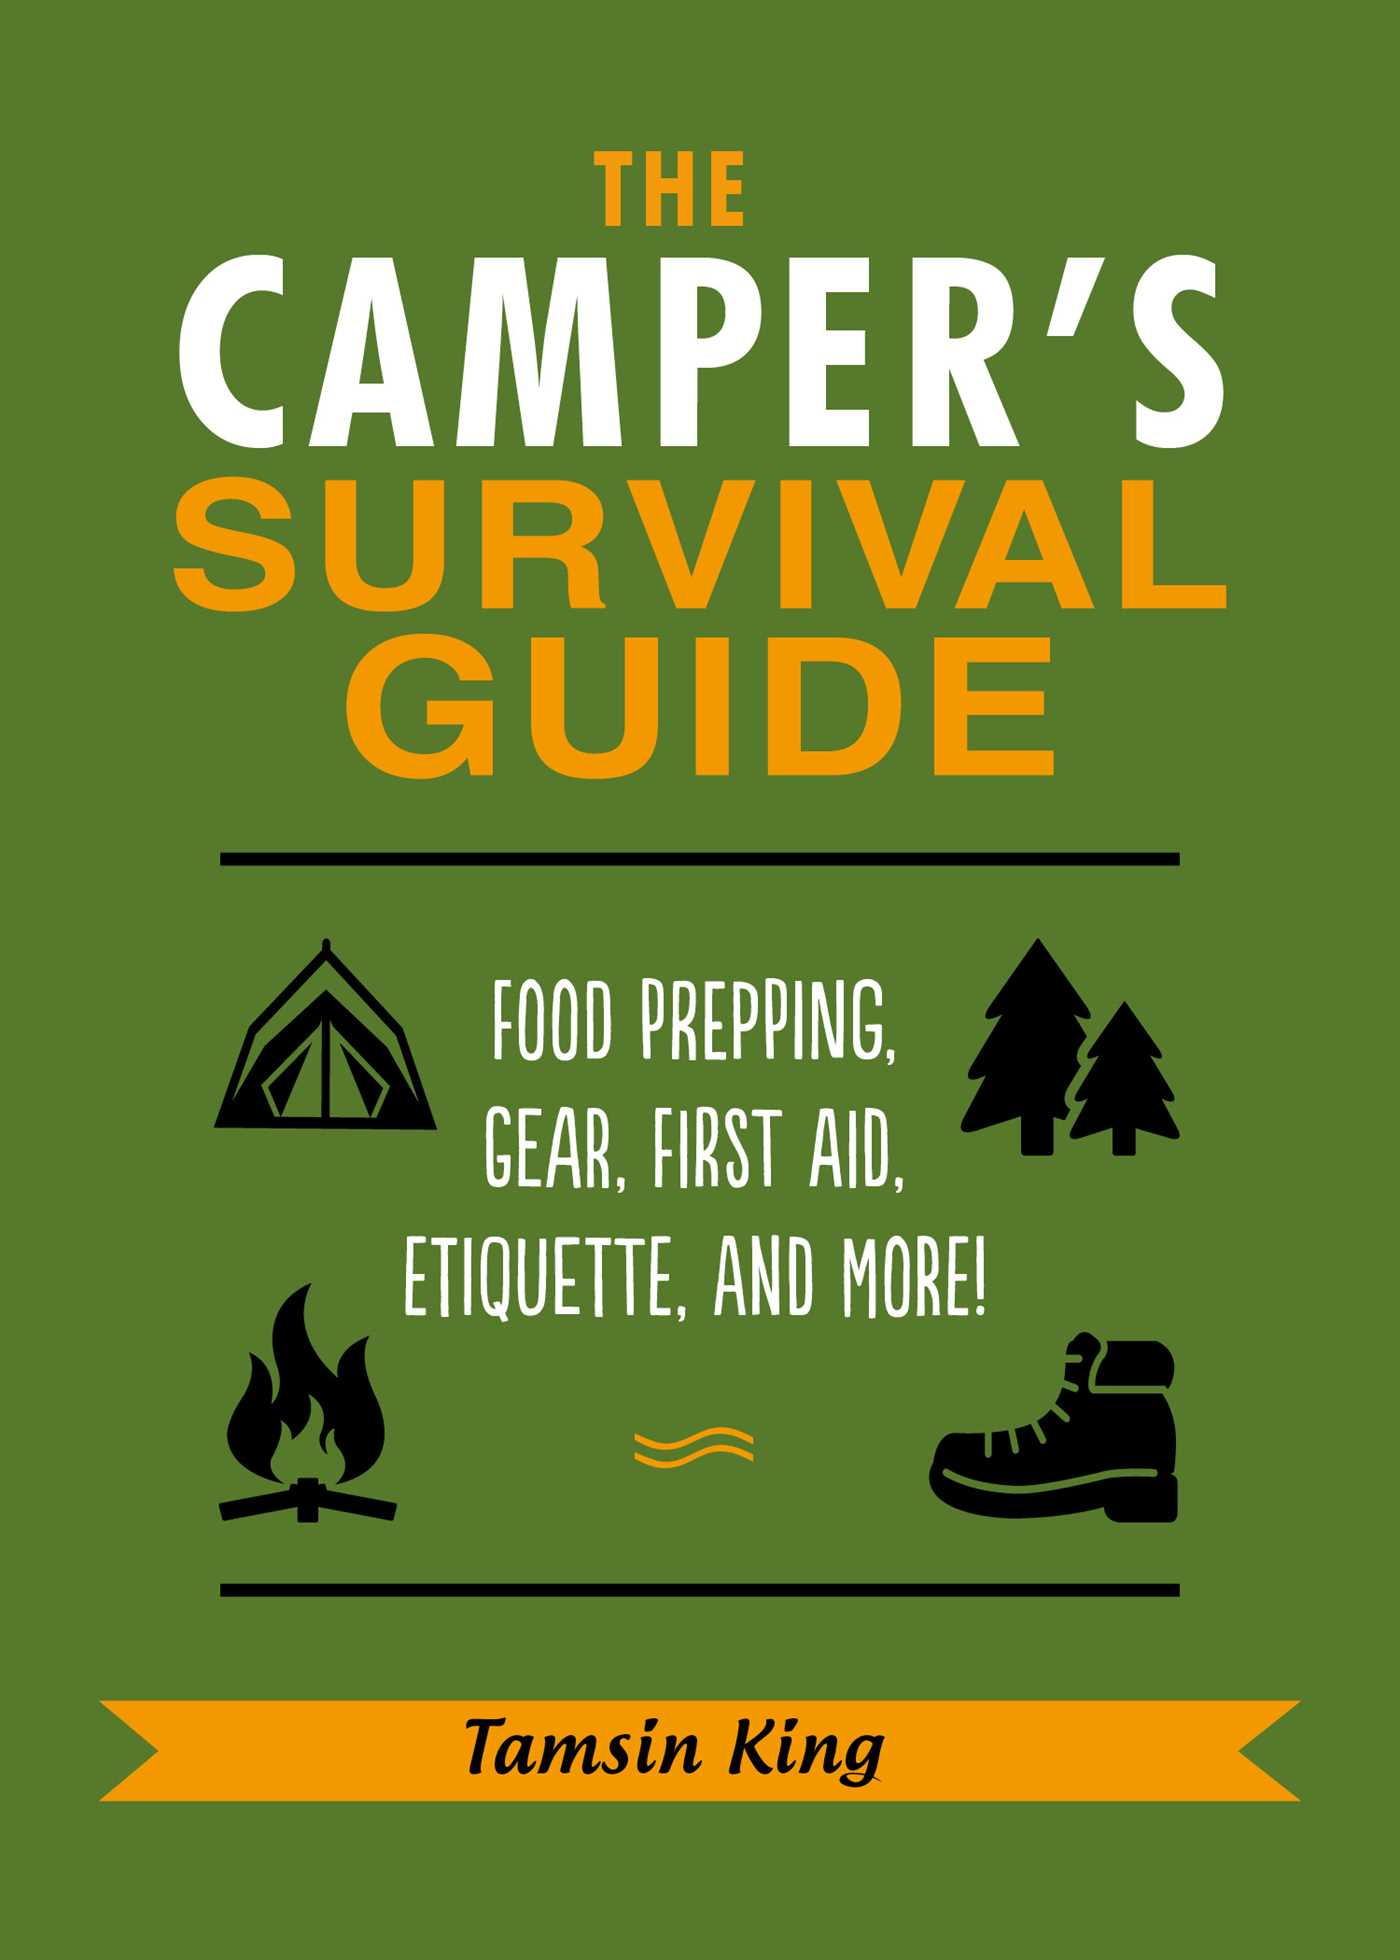 The Campers Survival Guide   Book by Tamsin King